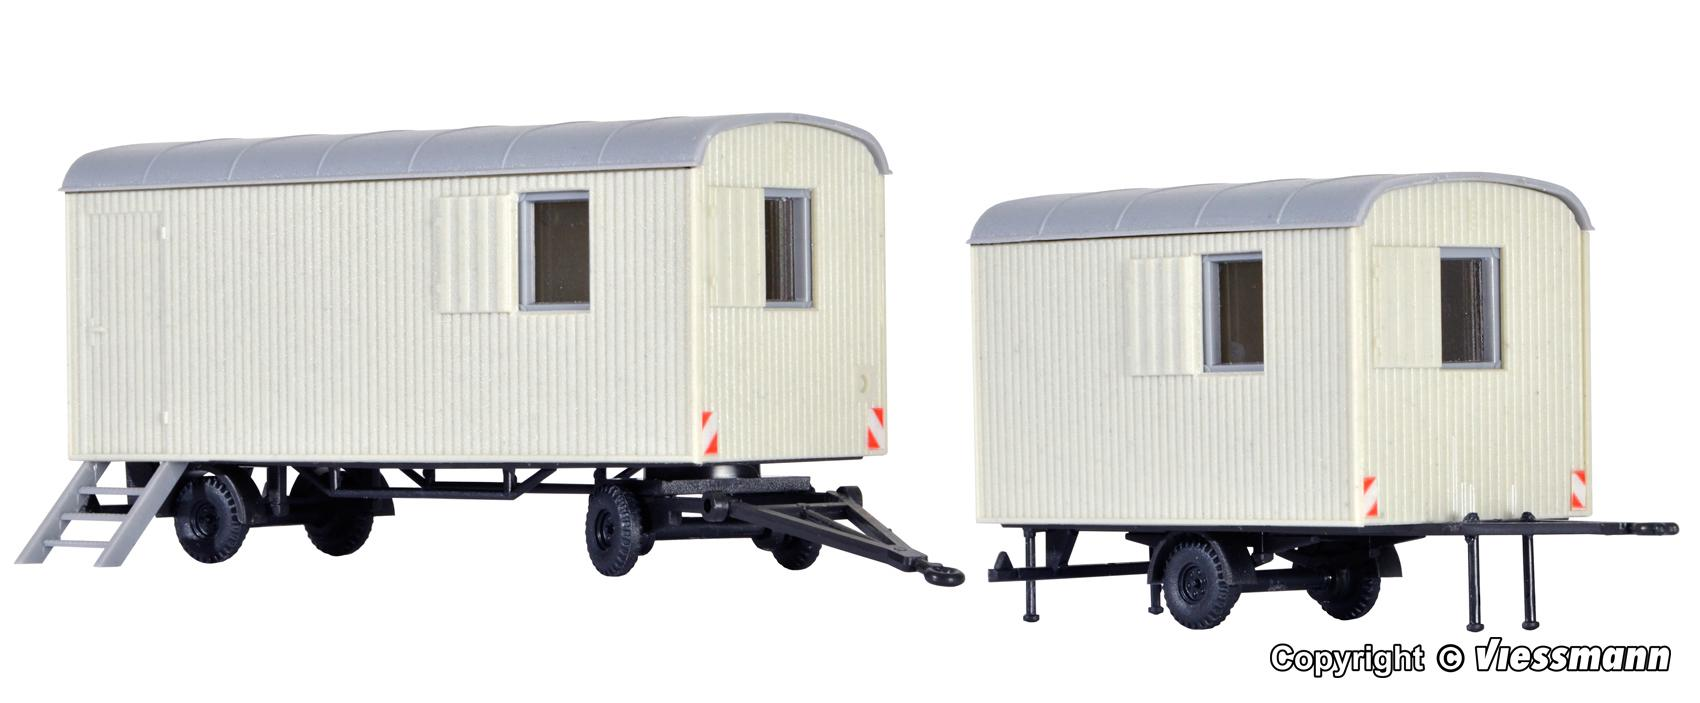 10278 KIBRI Construction trailer